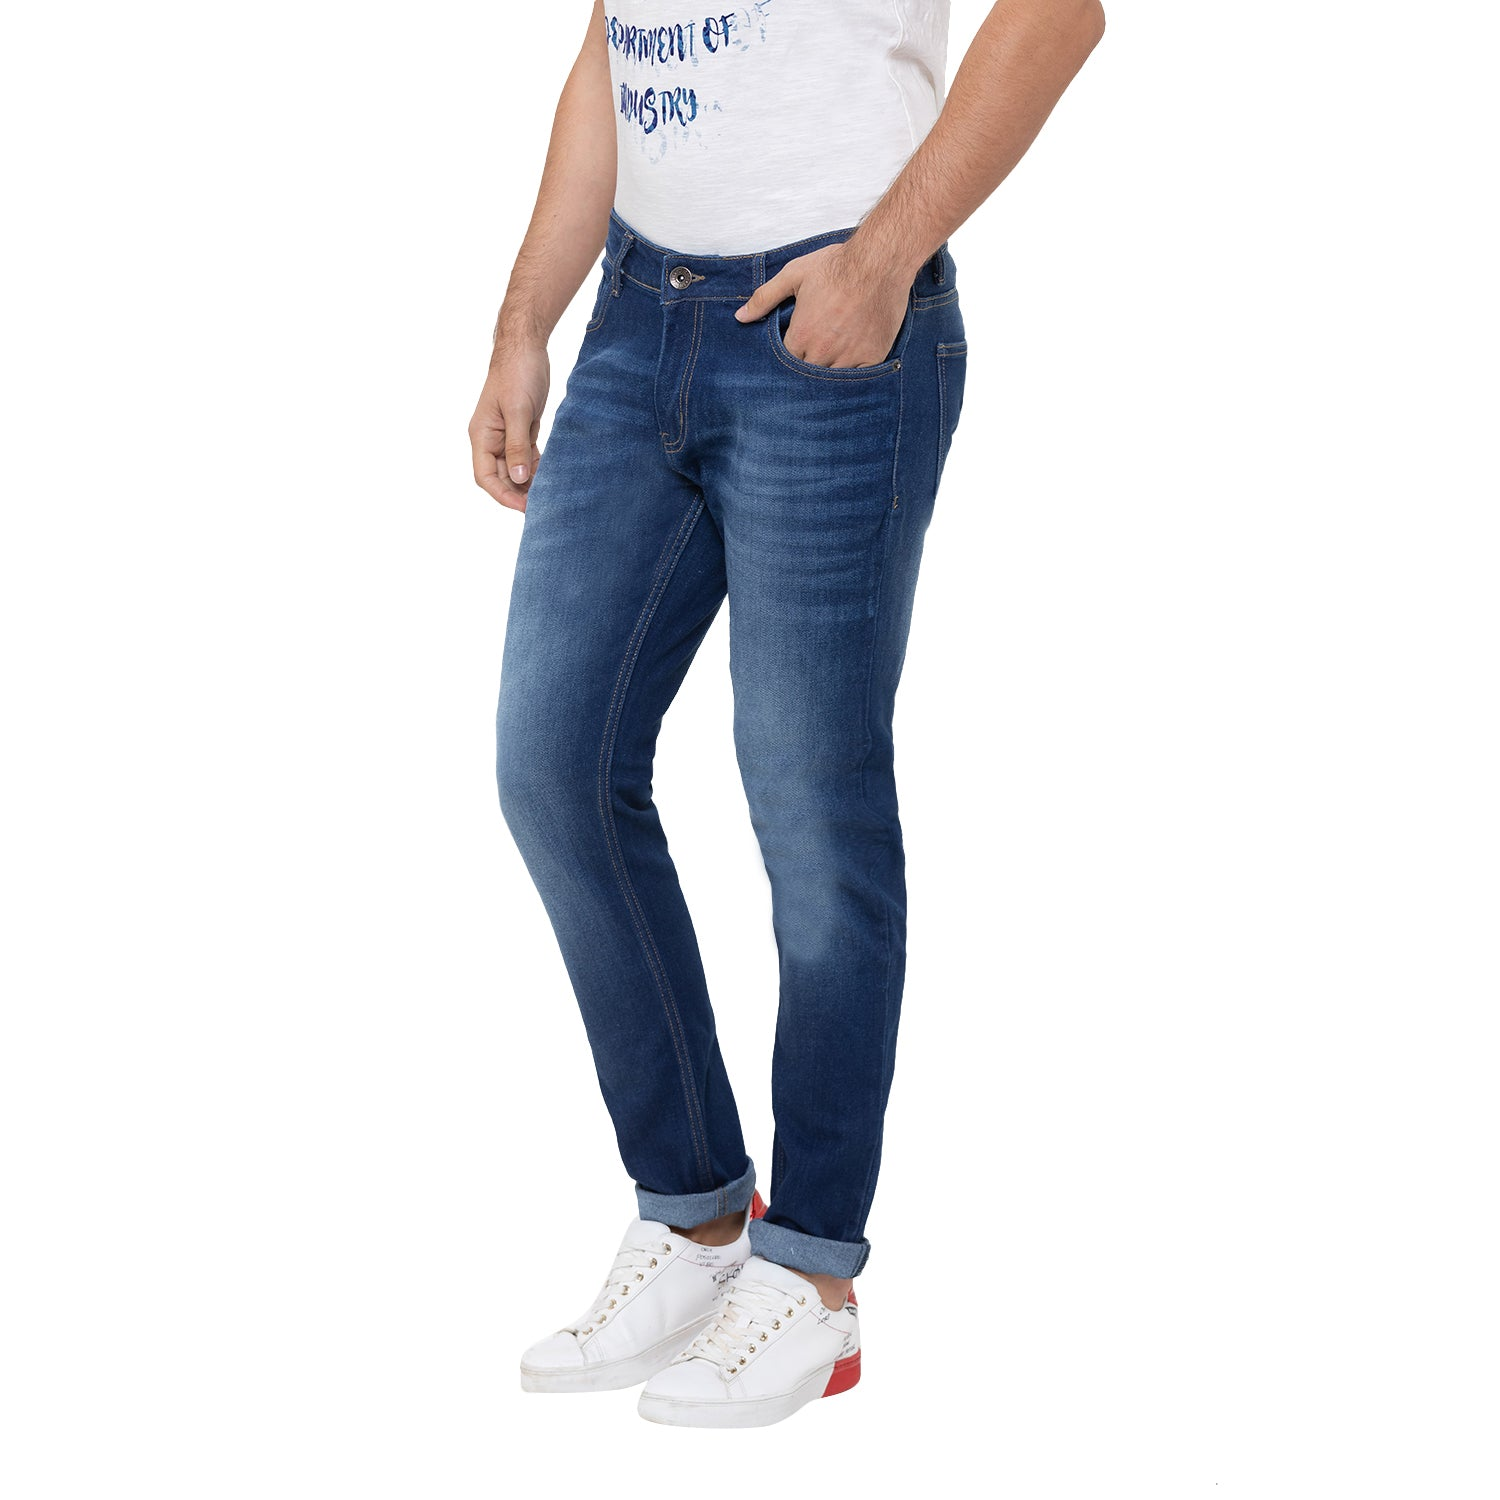 Globus Blue Washed Clean Look Jeans-4